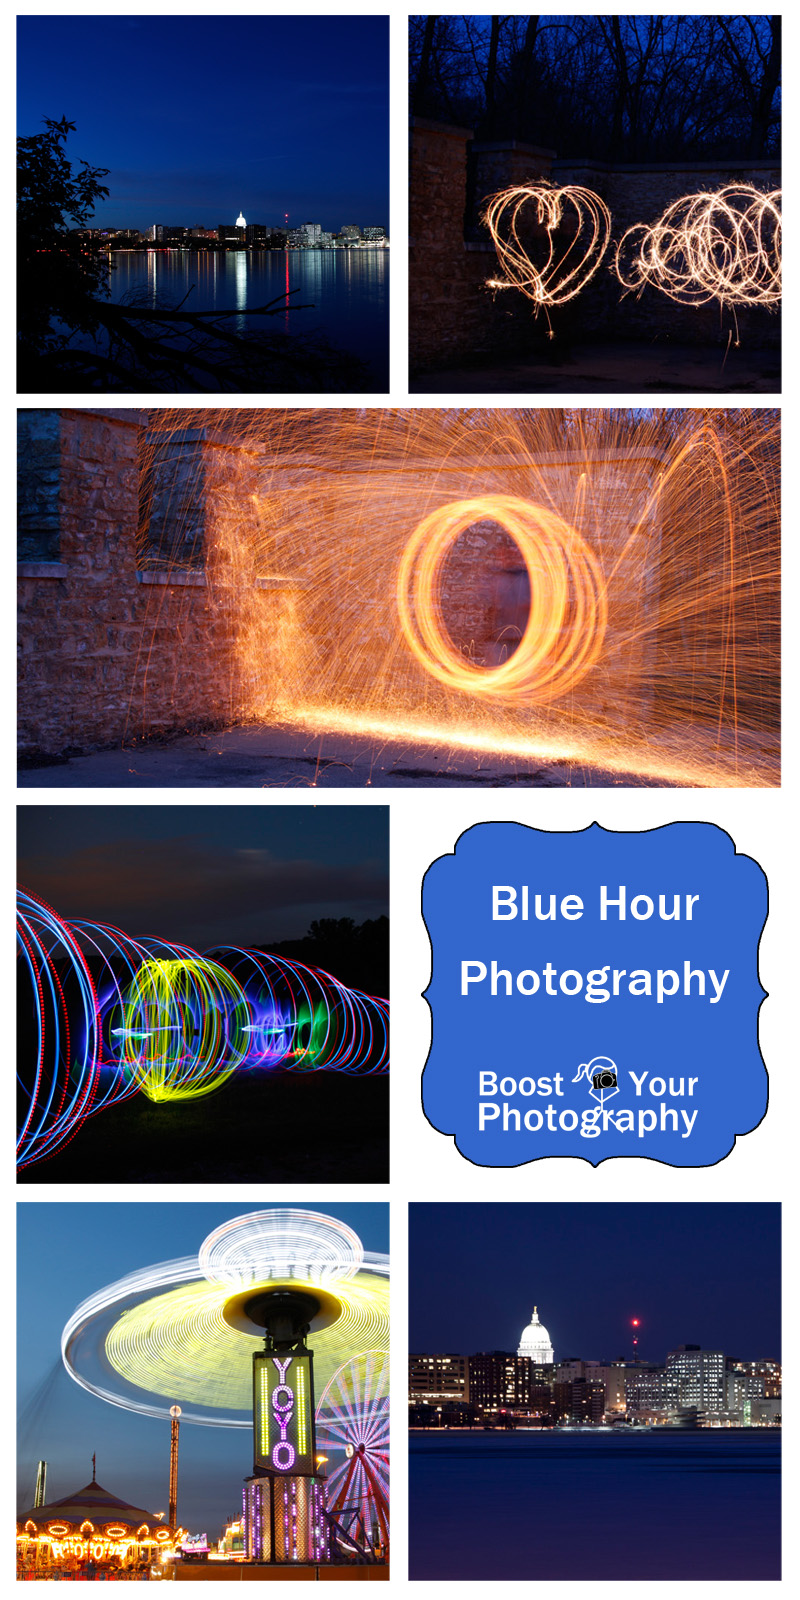 Blue Hour Photography: how to | Boost Your Photography